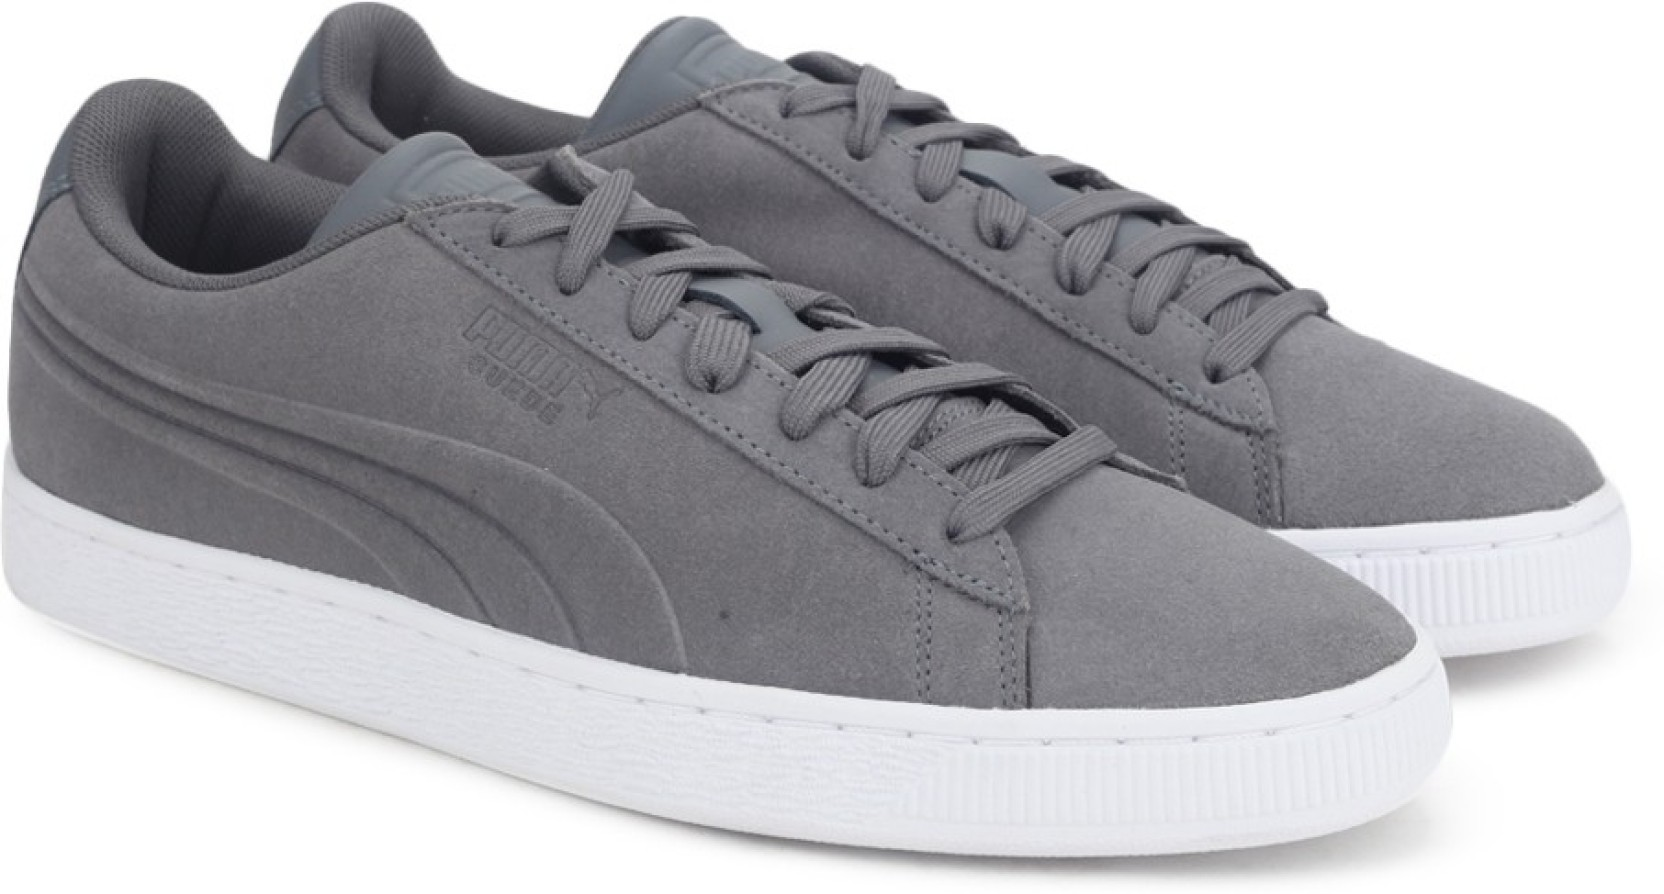 8840cd8d5774 Puma Suede Classic Embossed Sneakers For Men - Buy QUIET SHADE Color ...